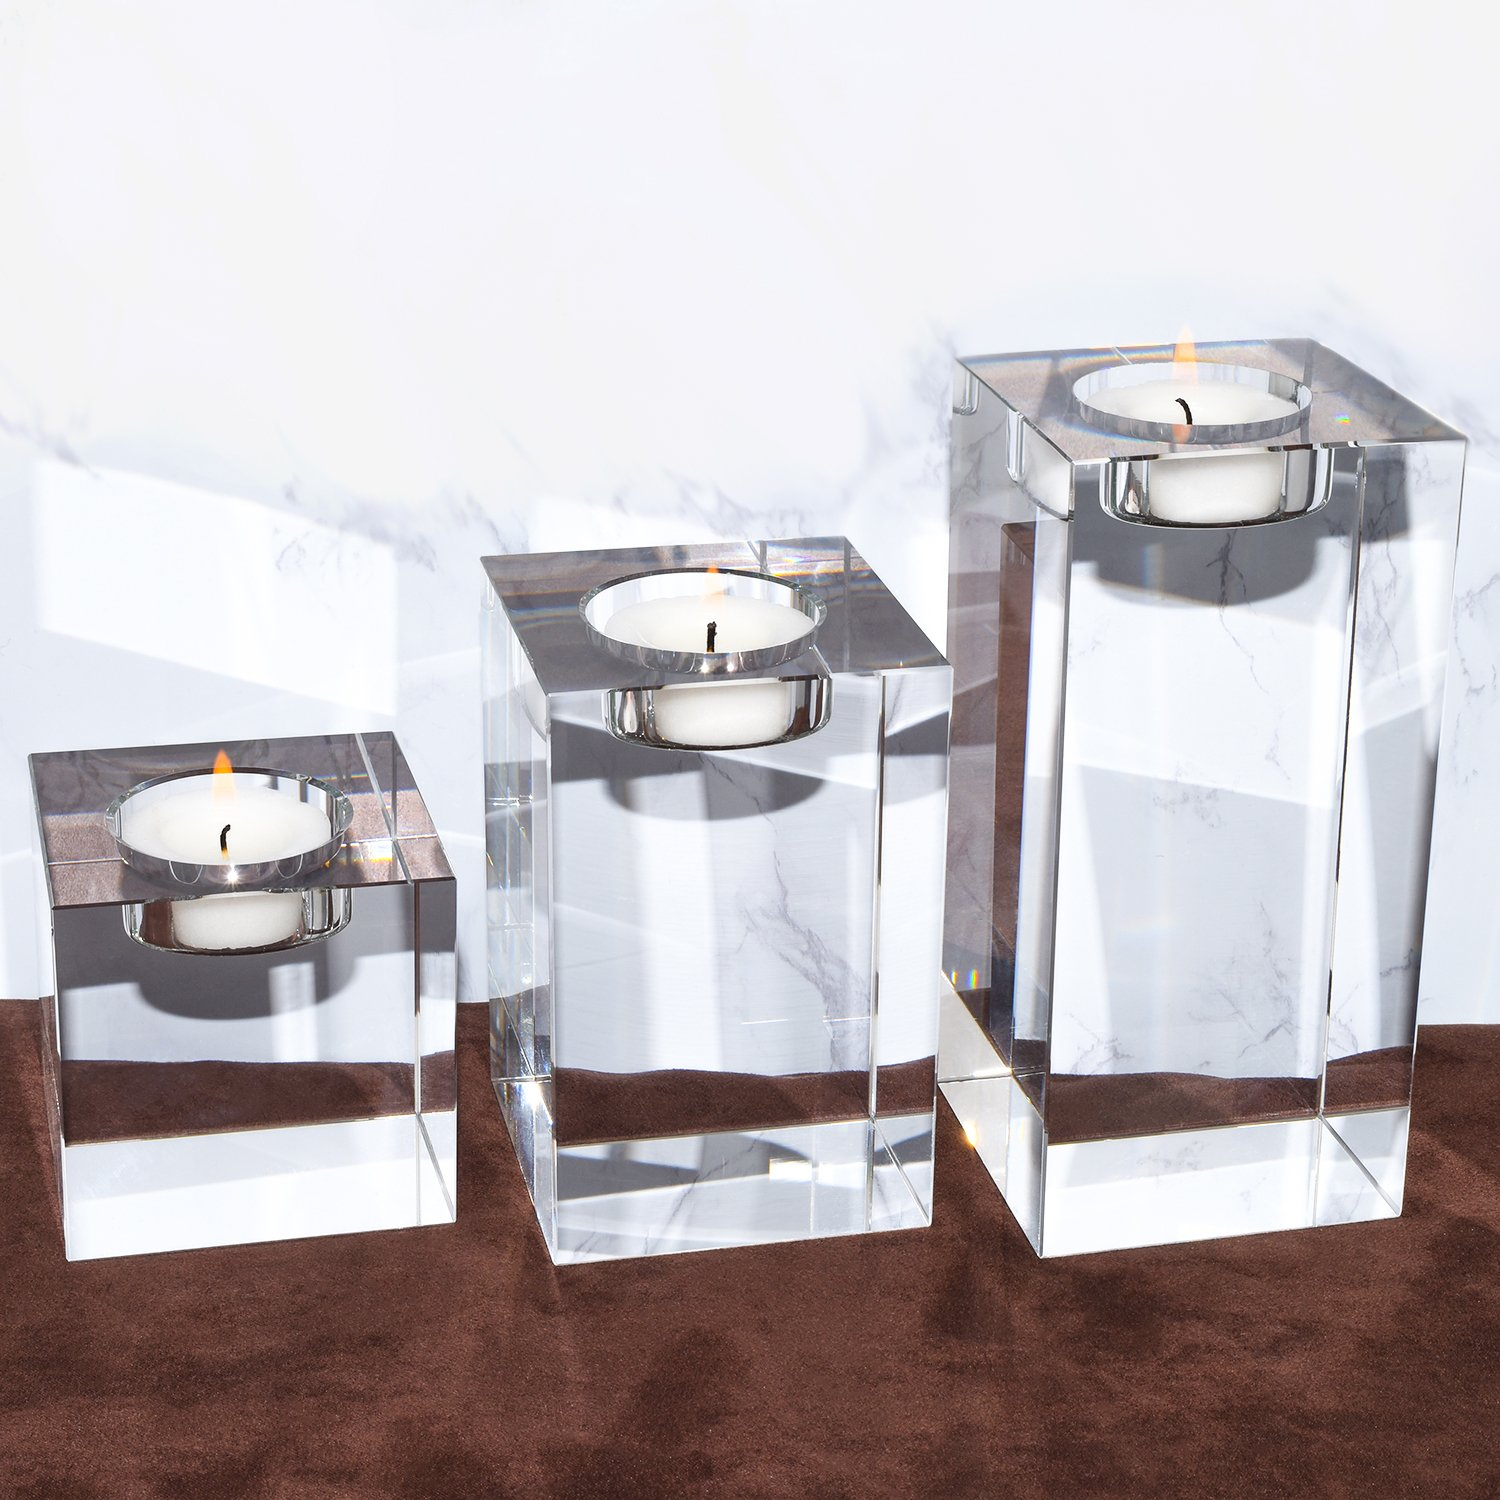 Amazing Home Huge and Heavy Crystal Candle Holders Set of 3, 2.7'' Width Prepackaged Elegant Heavy Solid Square Tealight Holders Set Centerpieces for Wedding, Home Decor, Ceremony and Anniversary